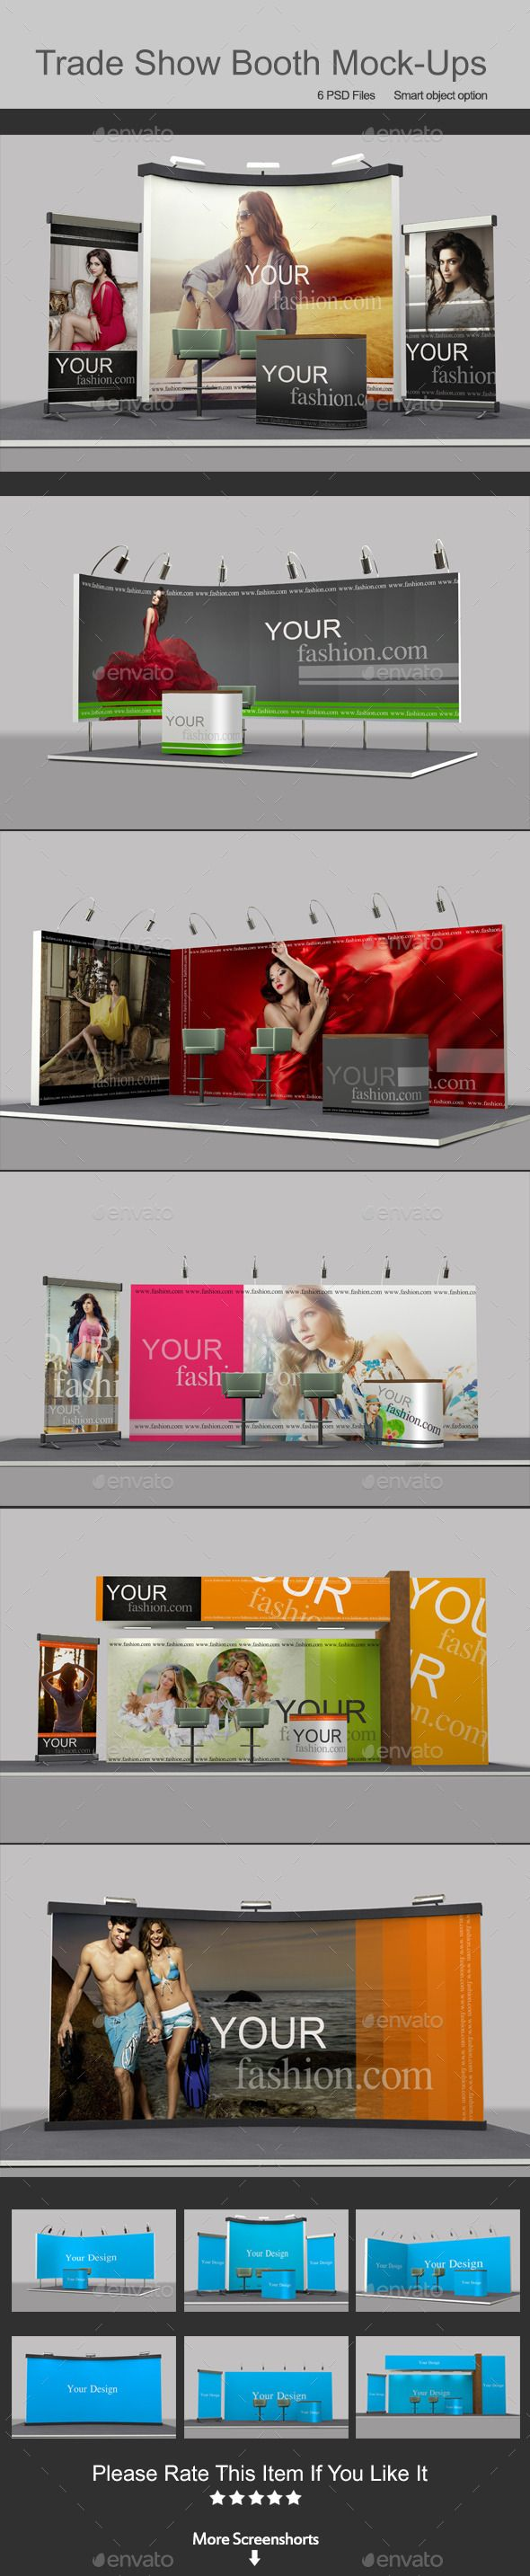 Graphicriver Exhibition Stand Design Mockup : Pin by best graphic design on mockup trade show booth design